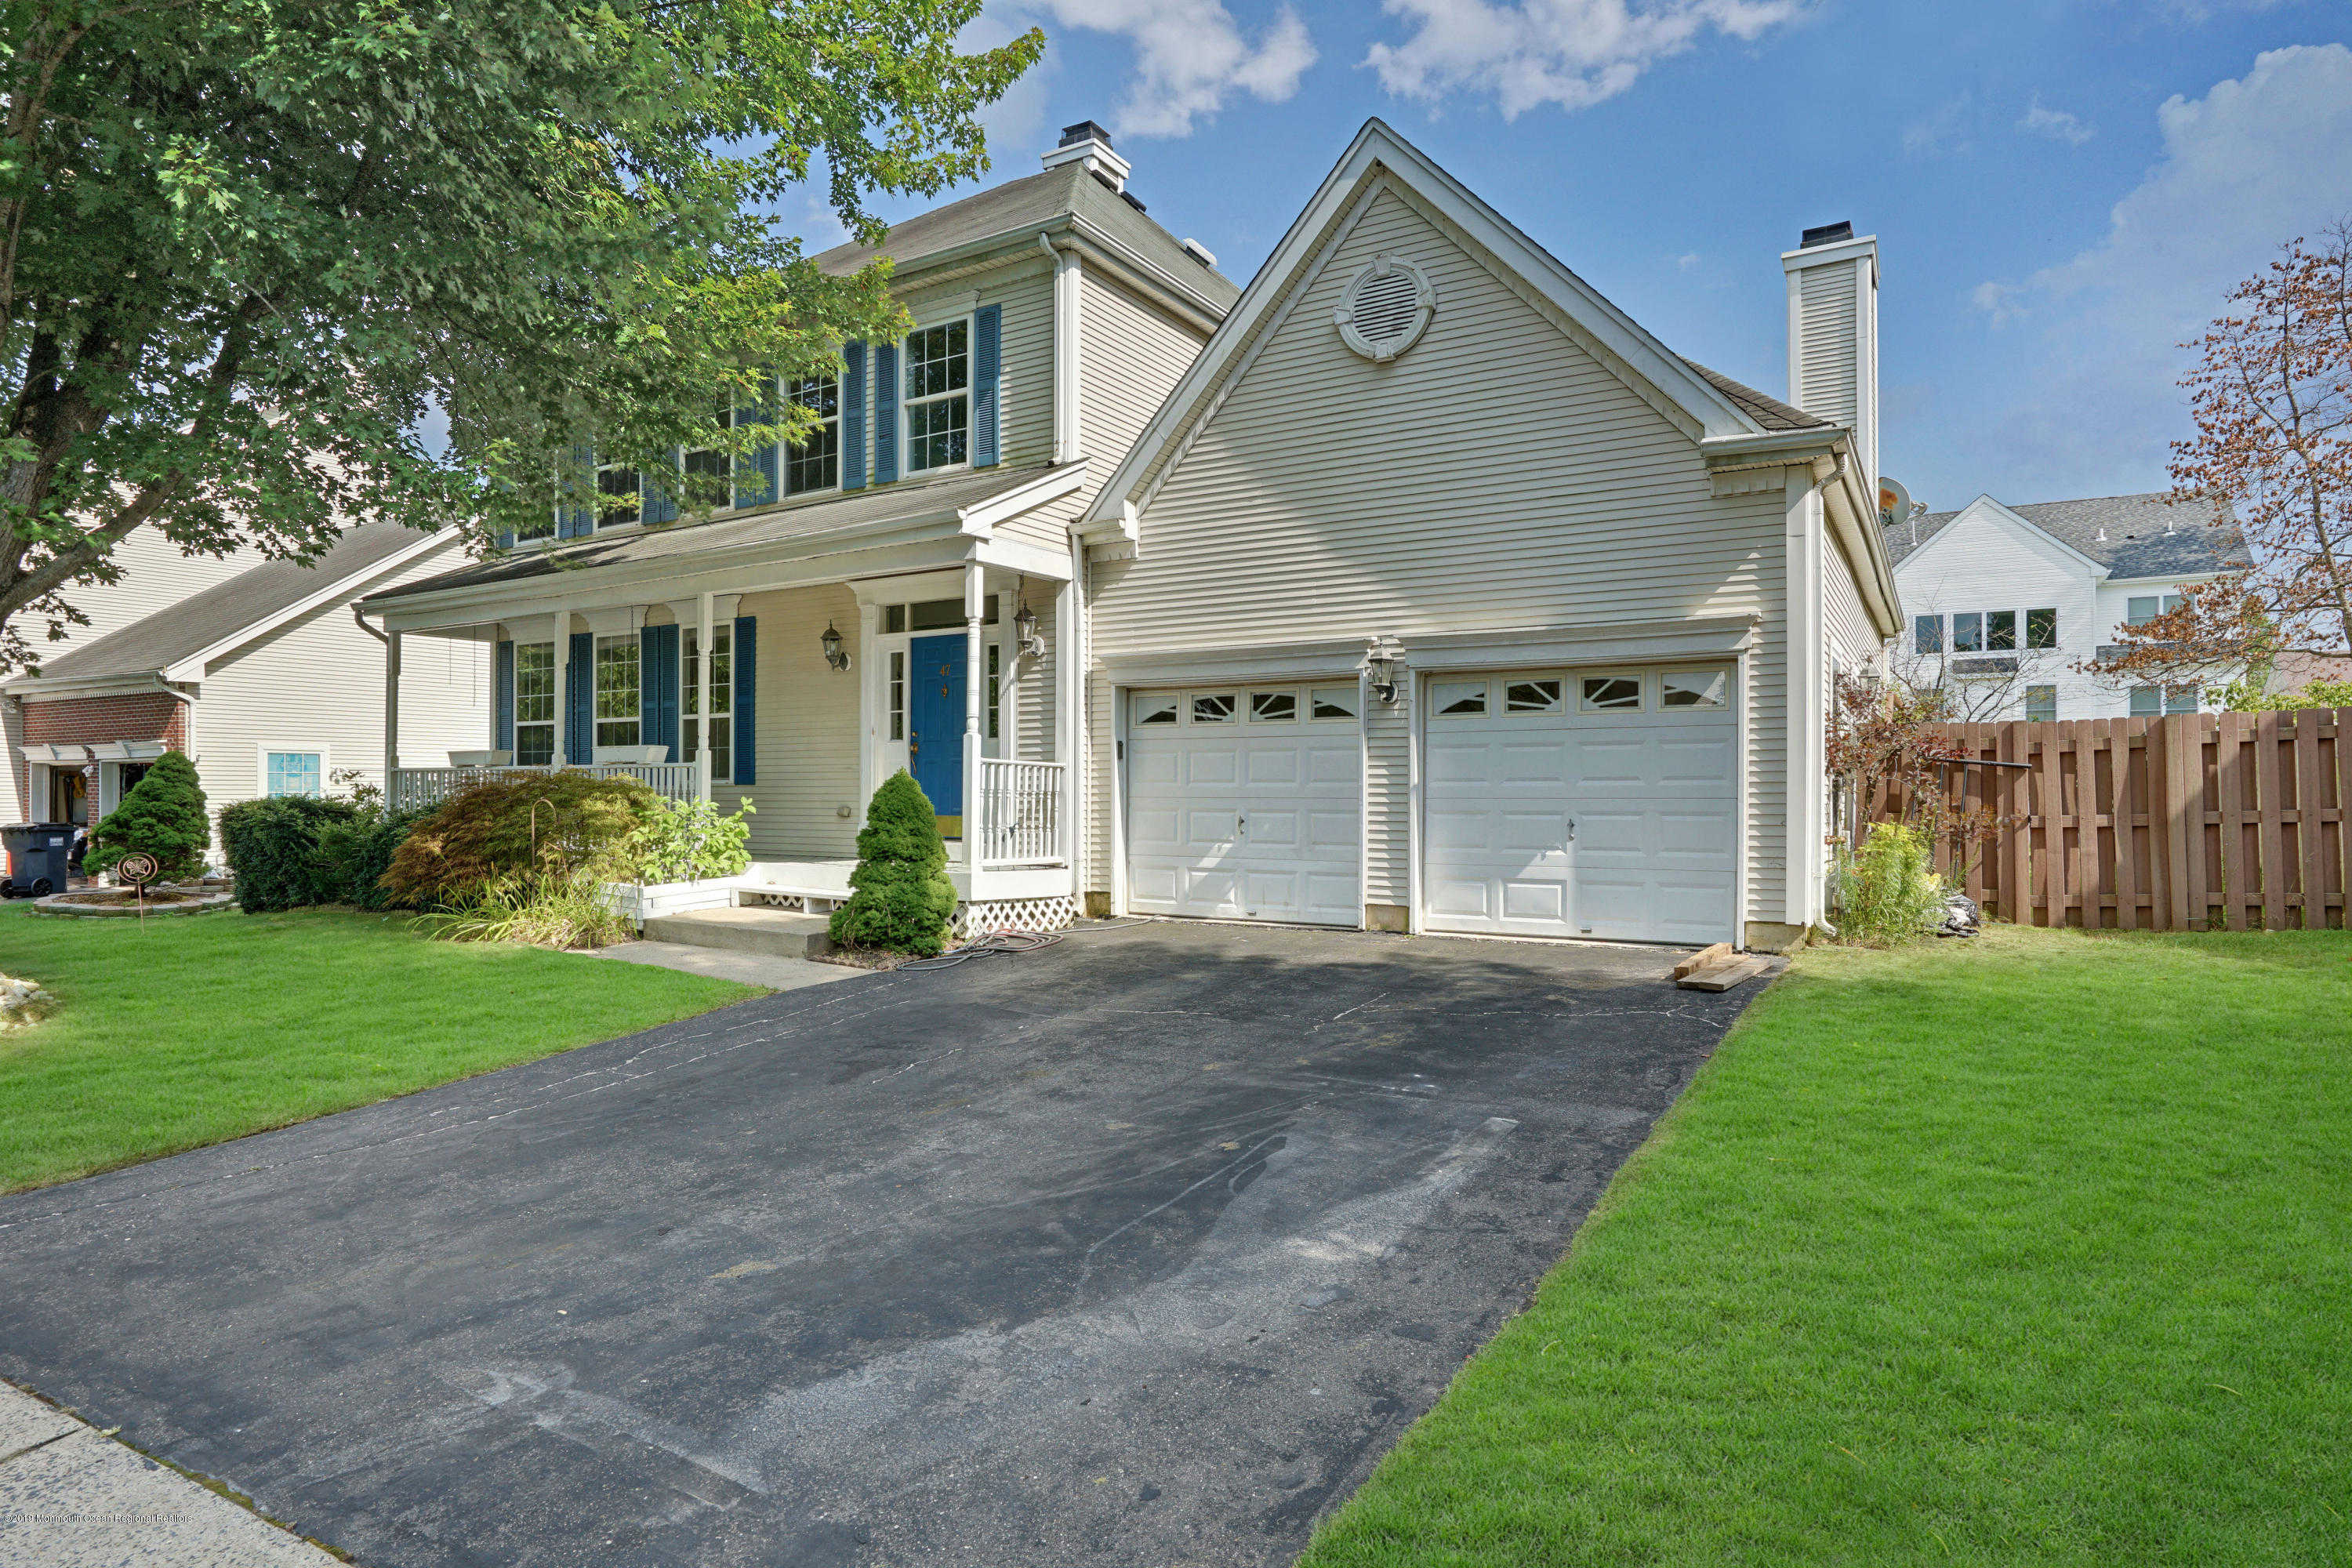 47 Rachael Drive, Morganville, NJ 07751 now has a new price of $579,000!